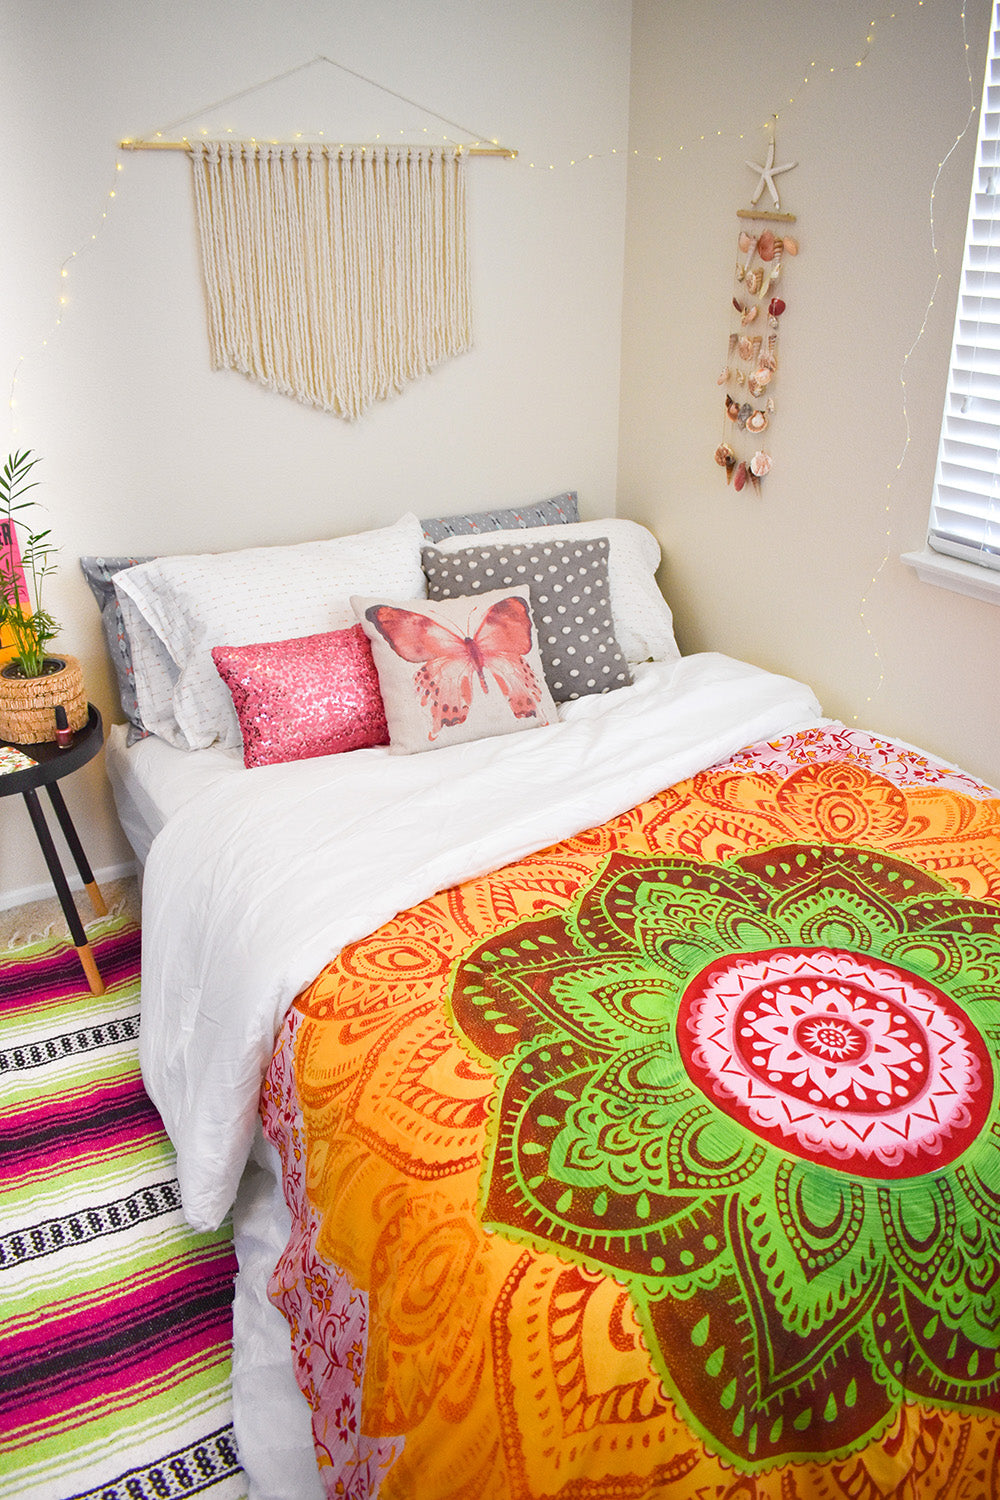 Those dark, gloomy, and grey days got you down this winter? Add a little sunshine to your day with the Blossom Mandala Roundie. This colorful round tapestry radiates warmth and cozy vibes with its vivid summer inspired colors. A quick and easy way to brighten up any room.